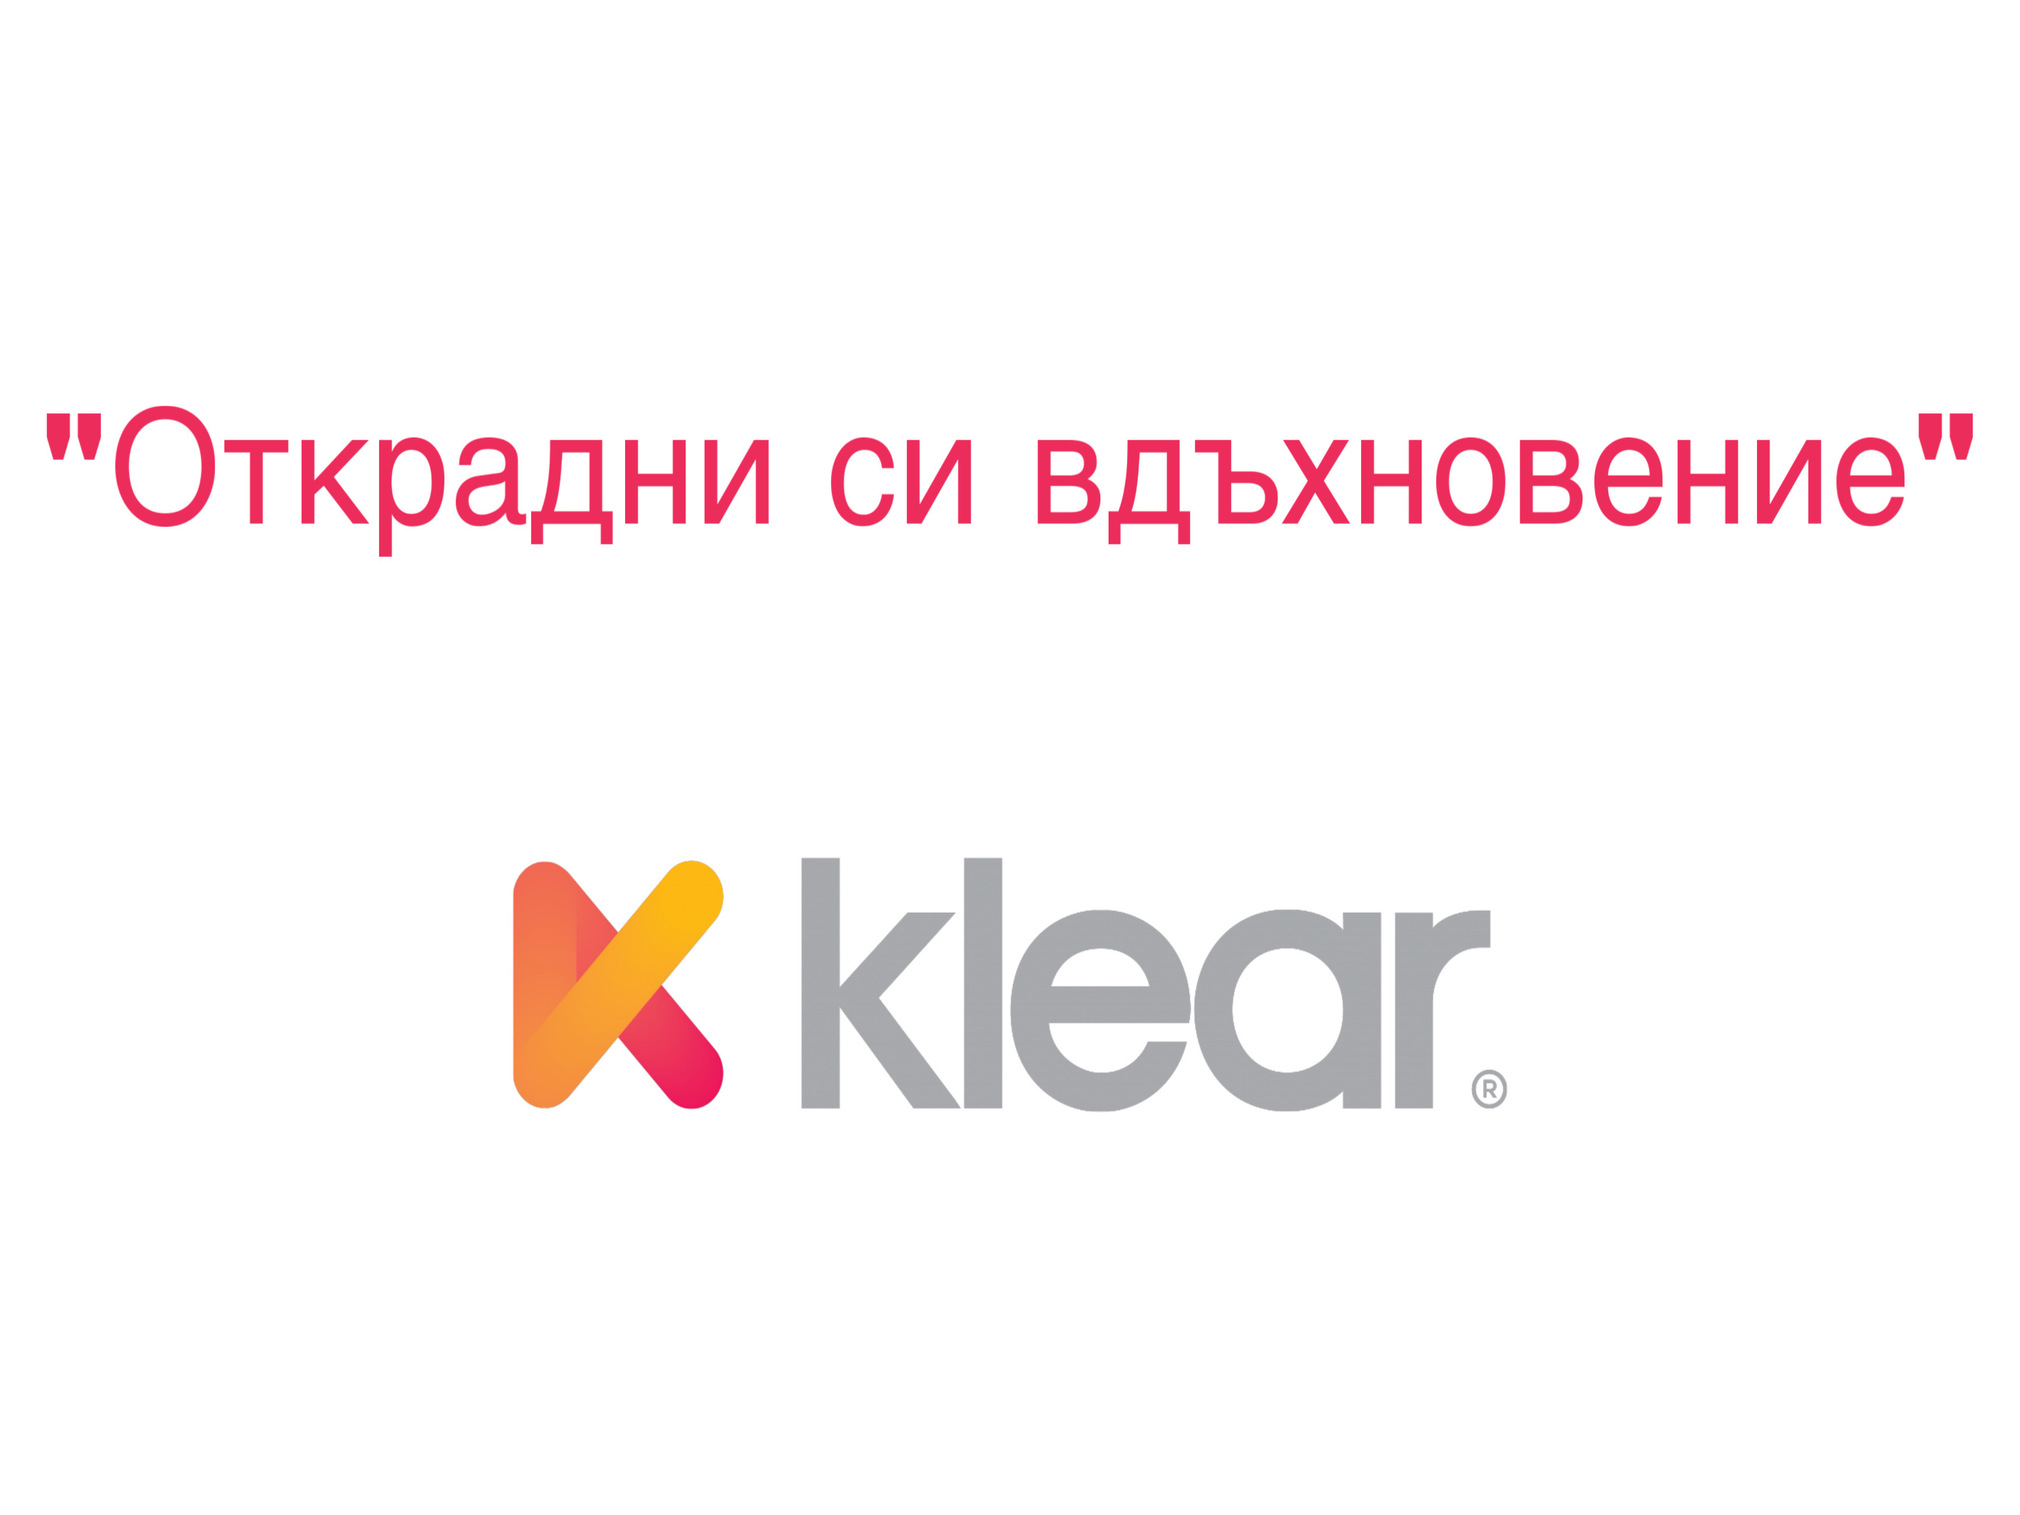 #INSPIRATIONFORBUSINESS #Klear